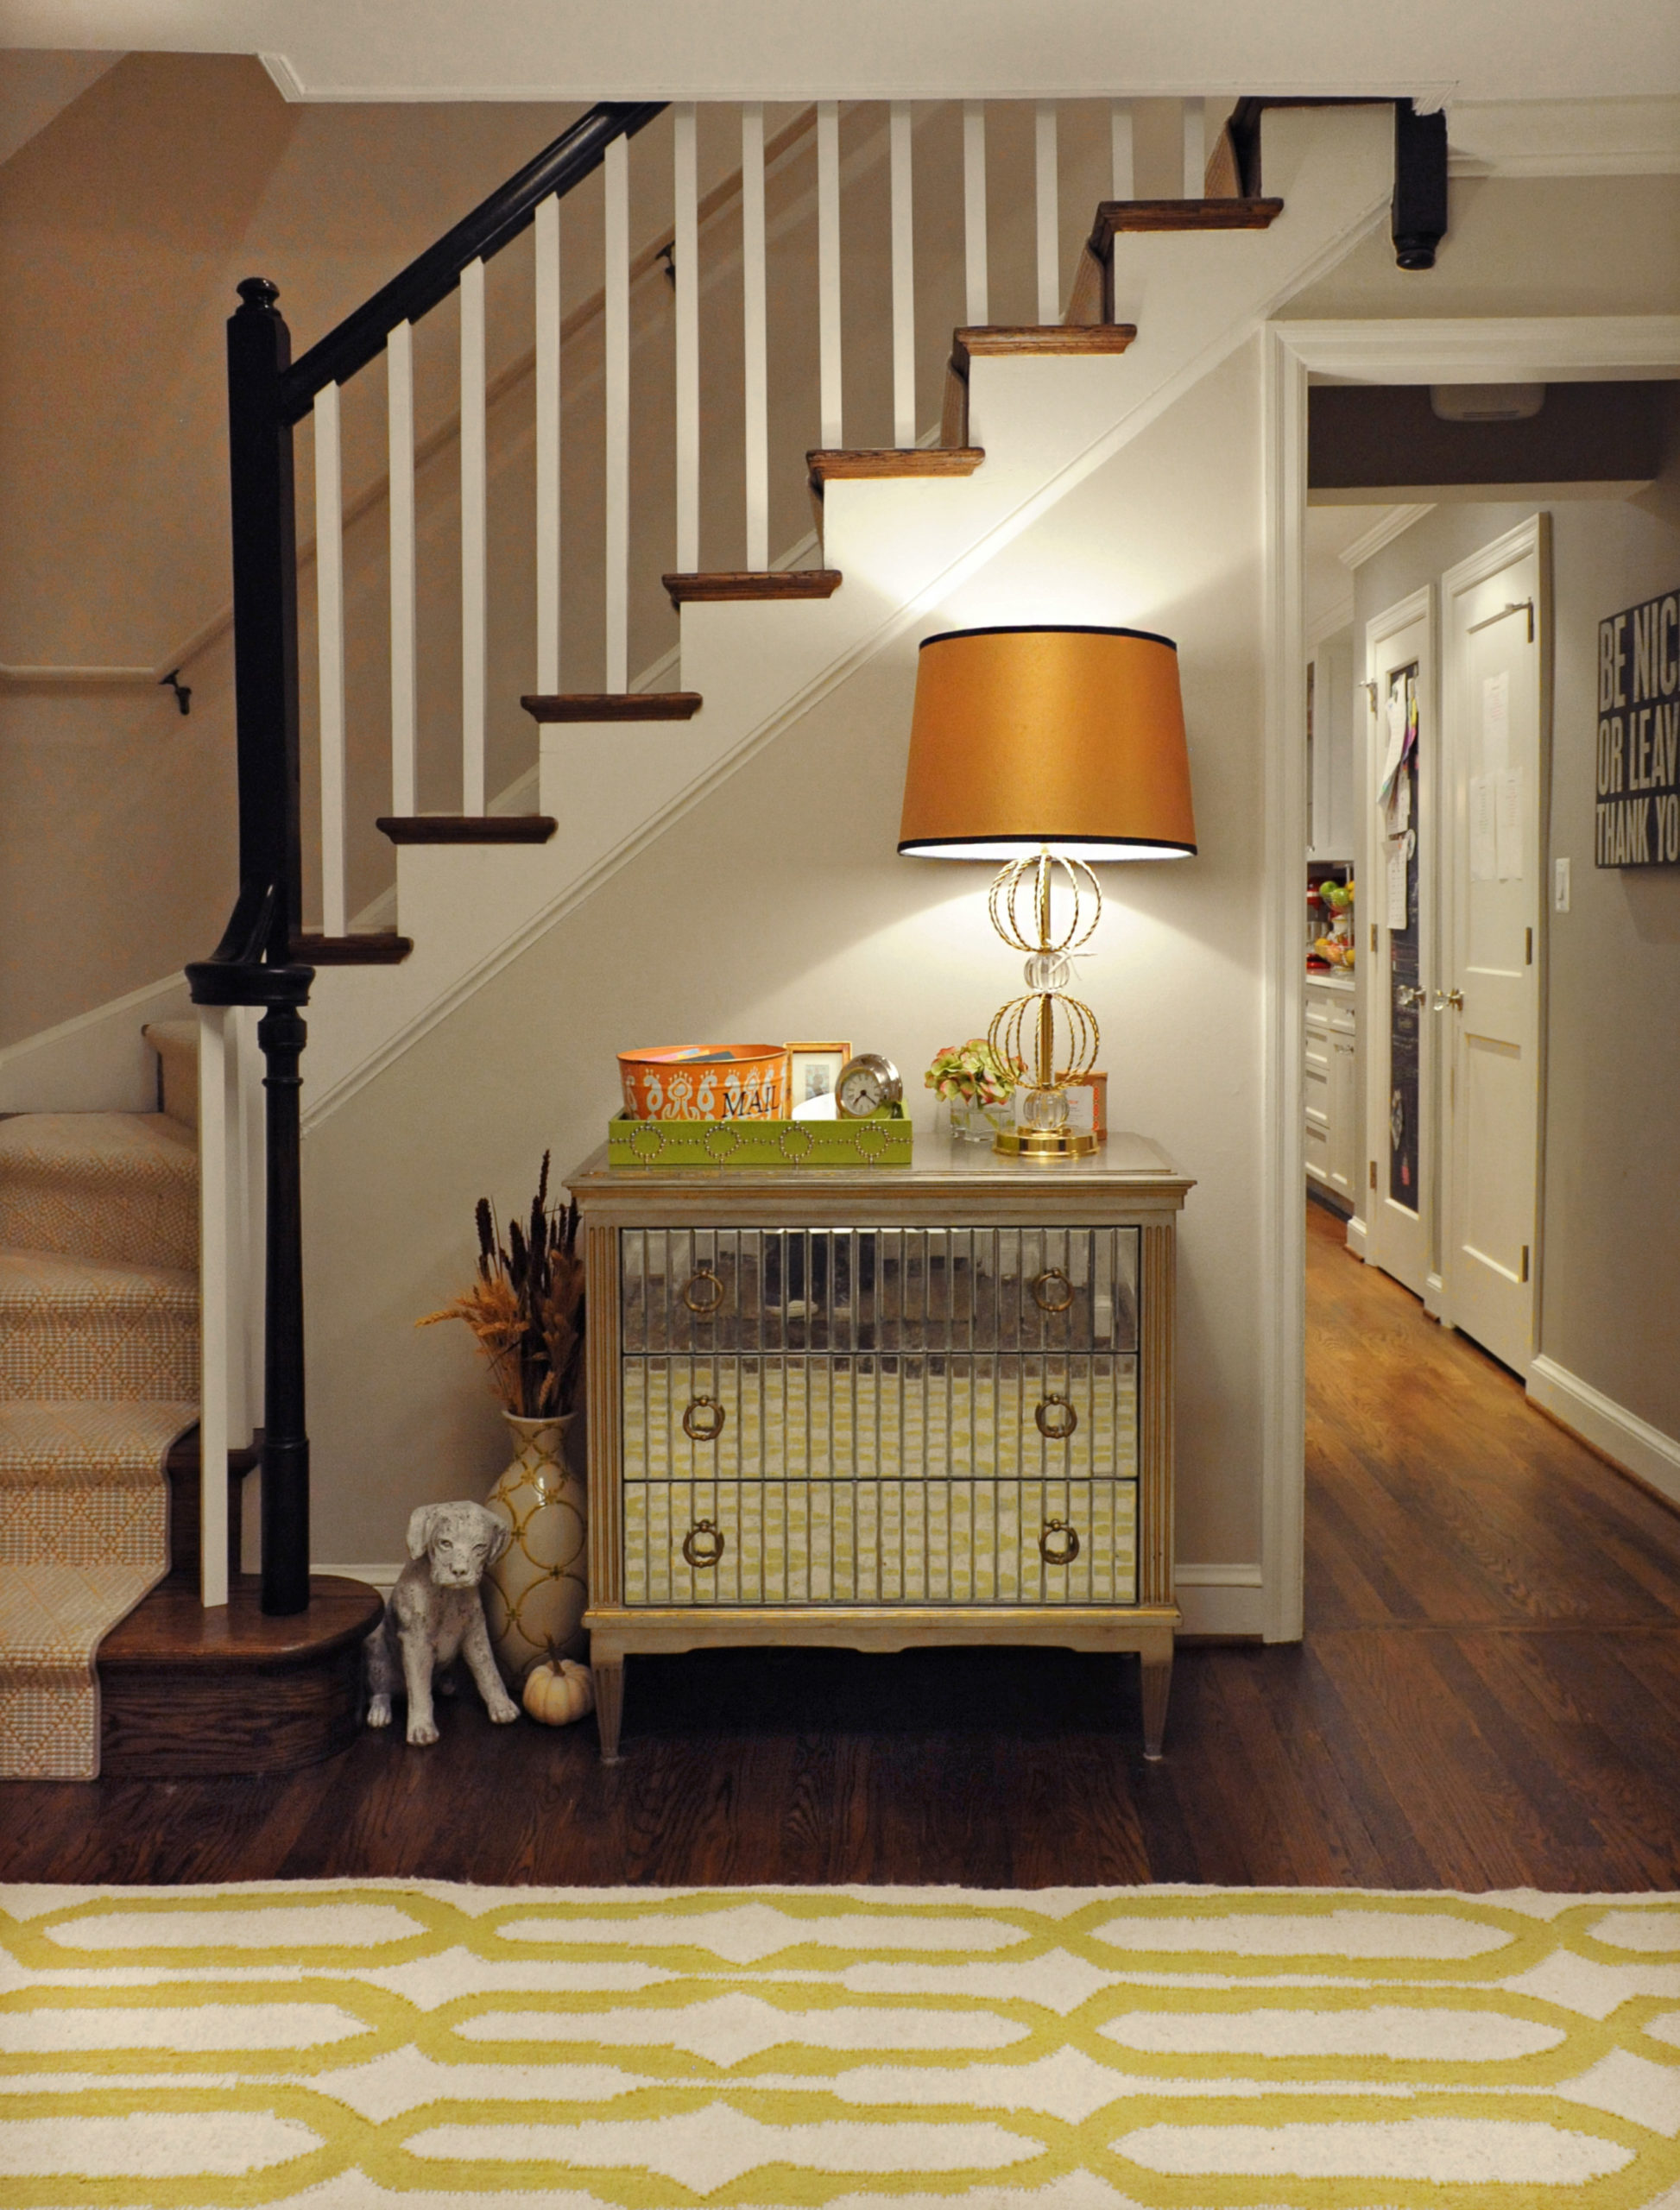 A warm and inviting entry foyer